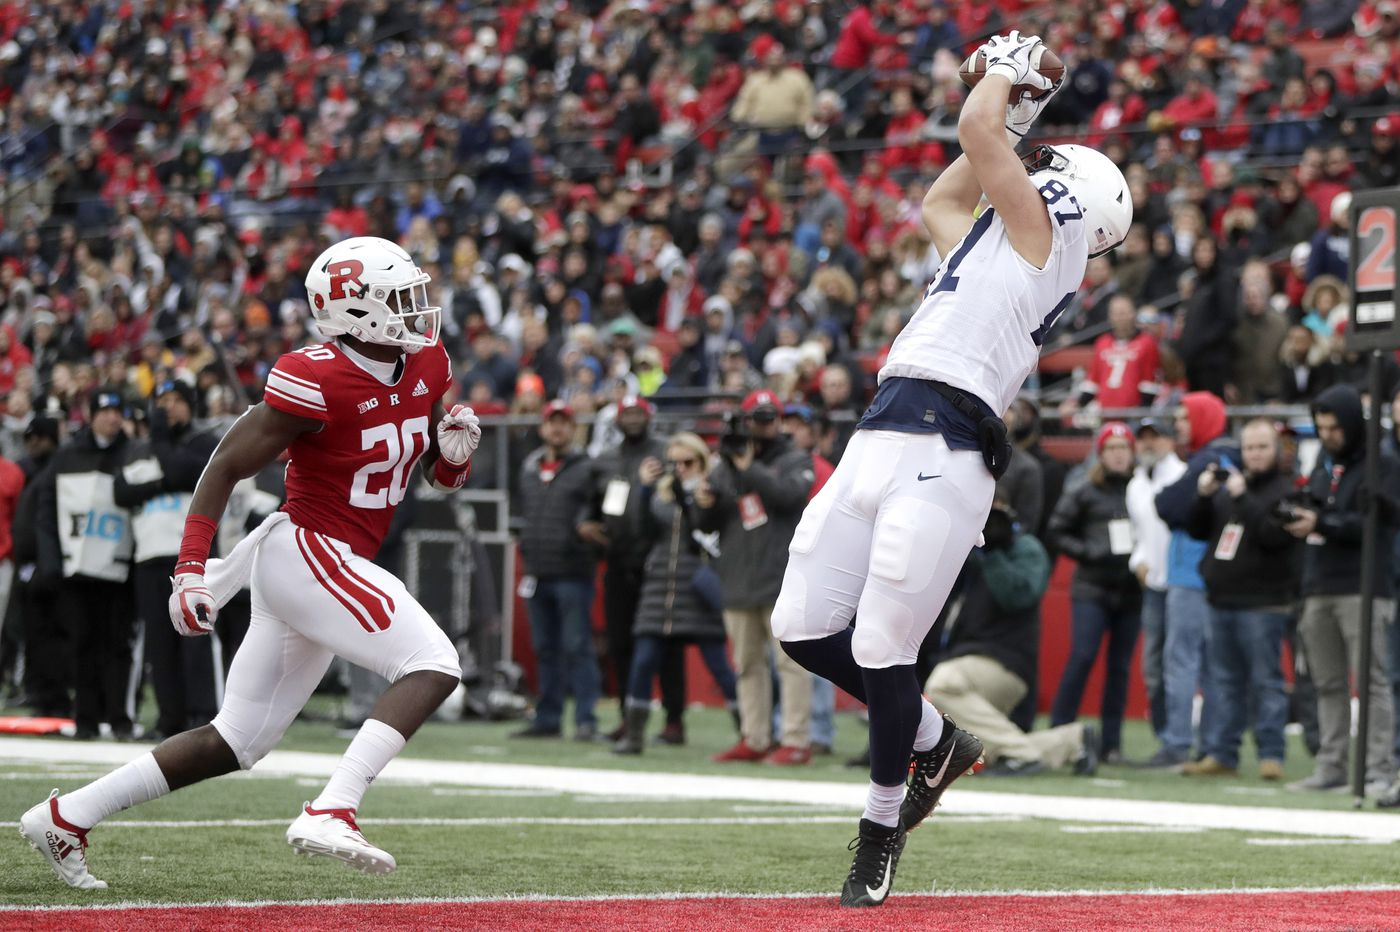 Five observations from Penn State's 20-7 victory over Rutgers